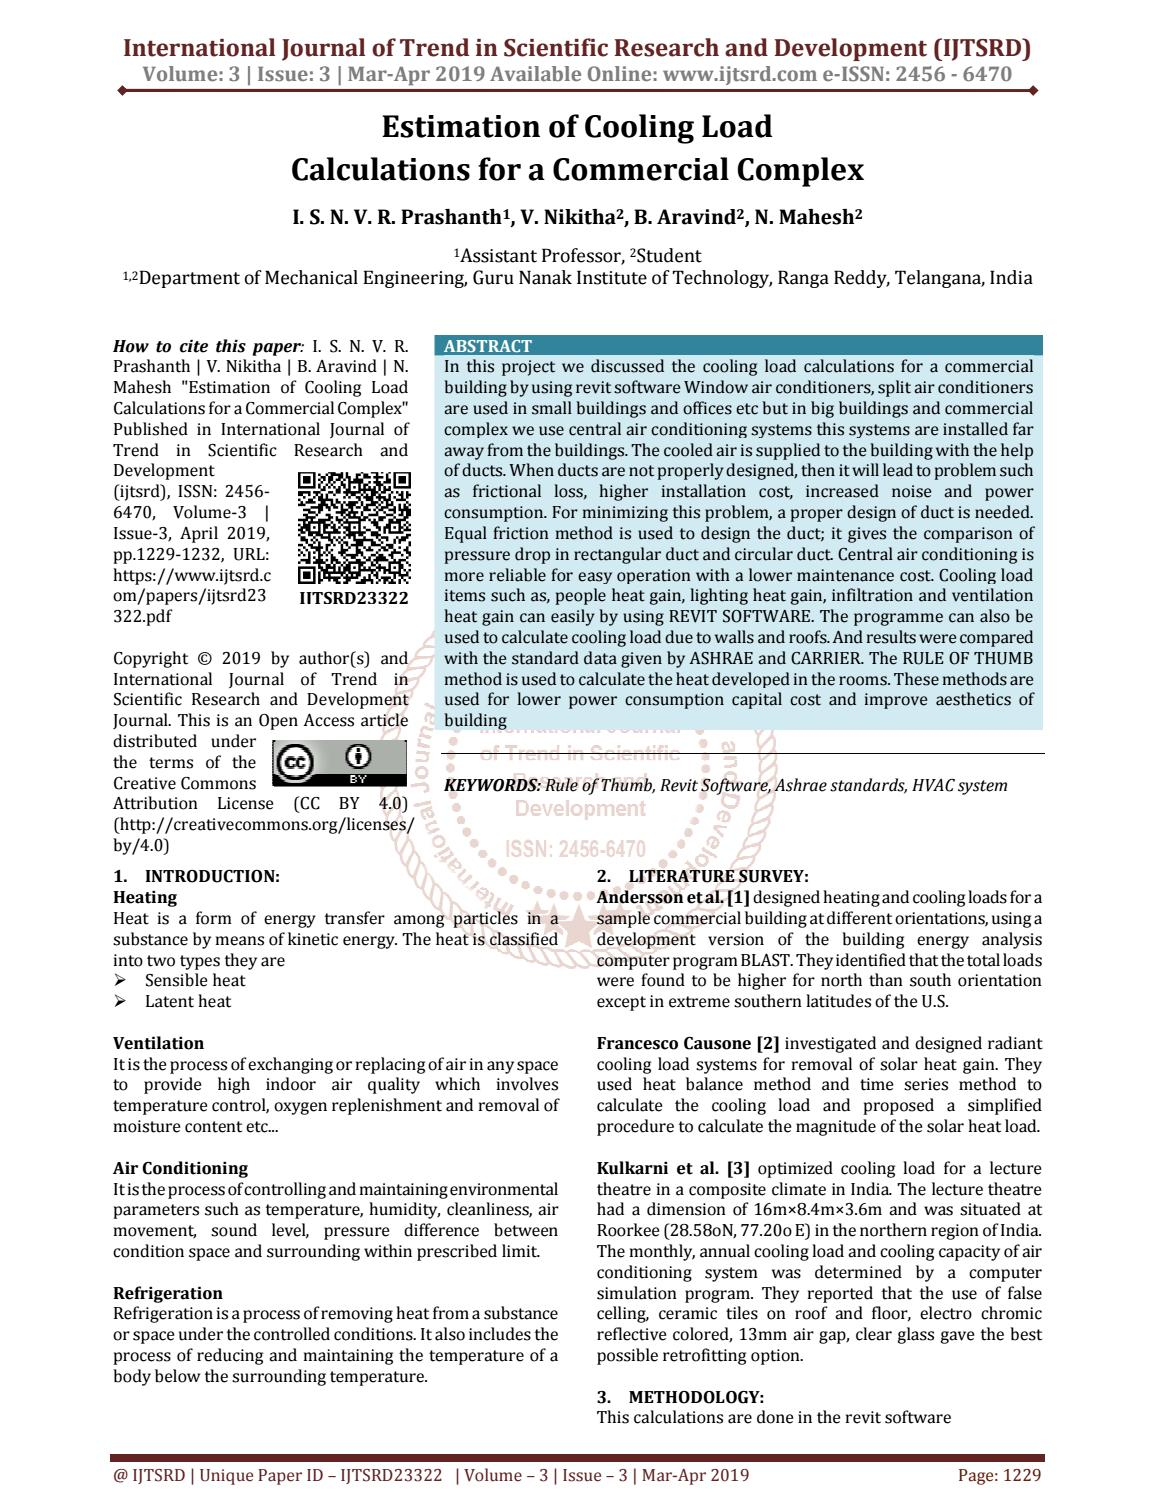 Estimation of Cooling Load Calculations for a Commercial